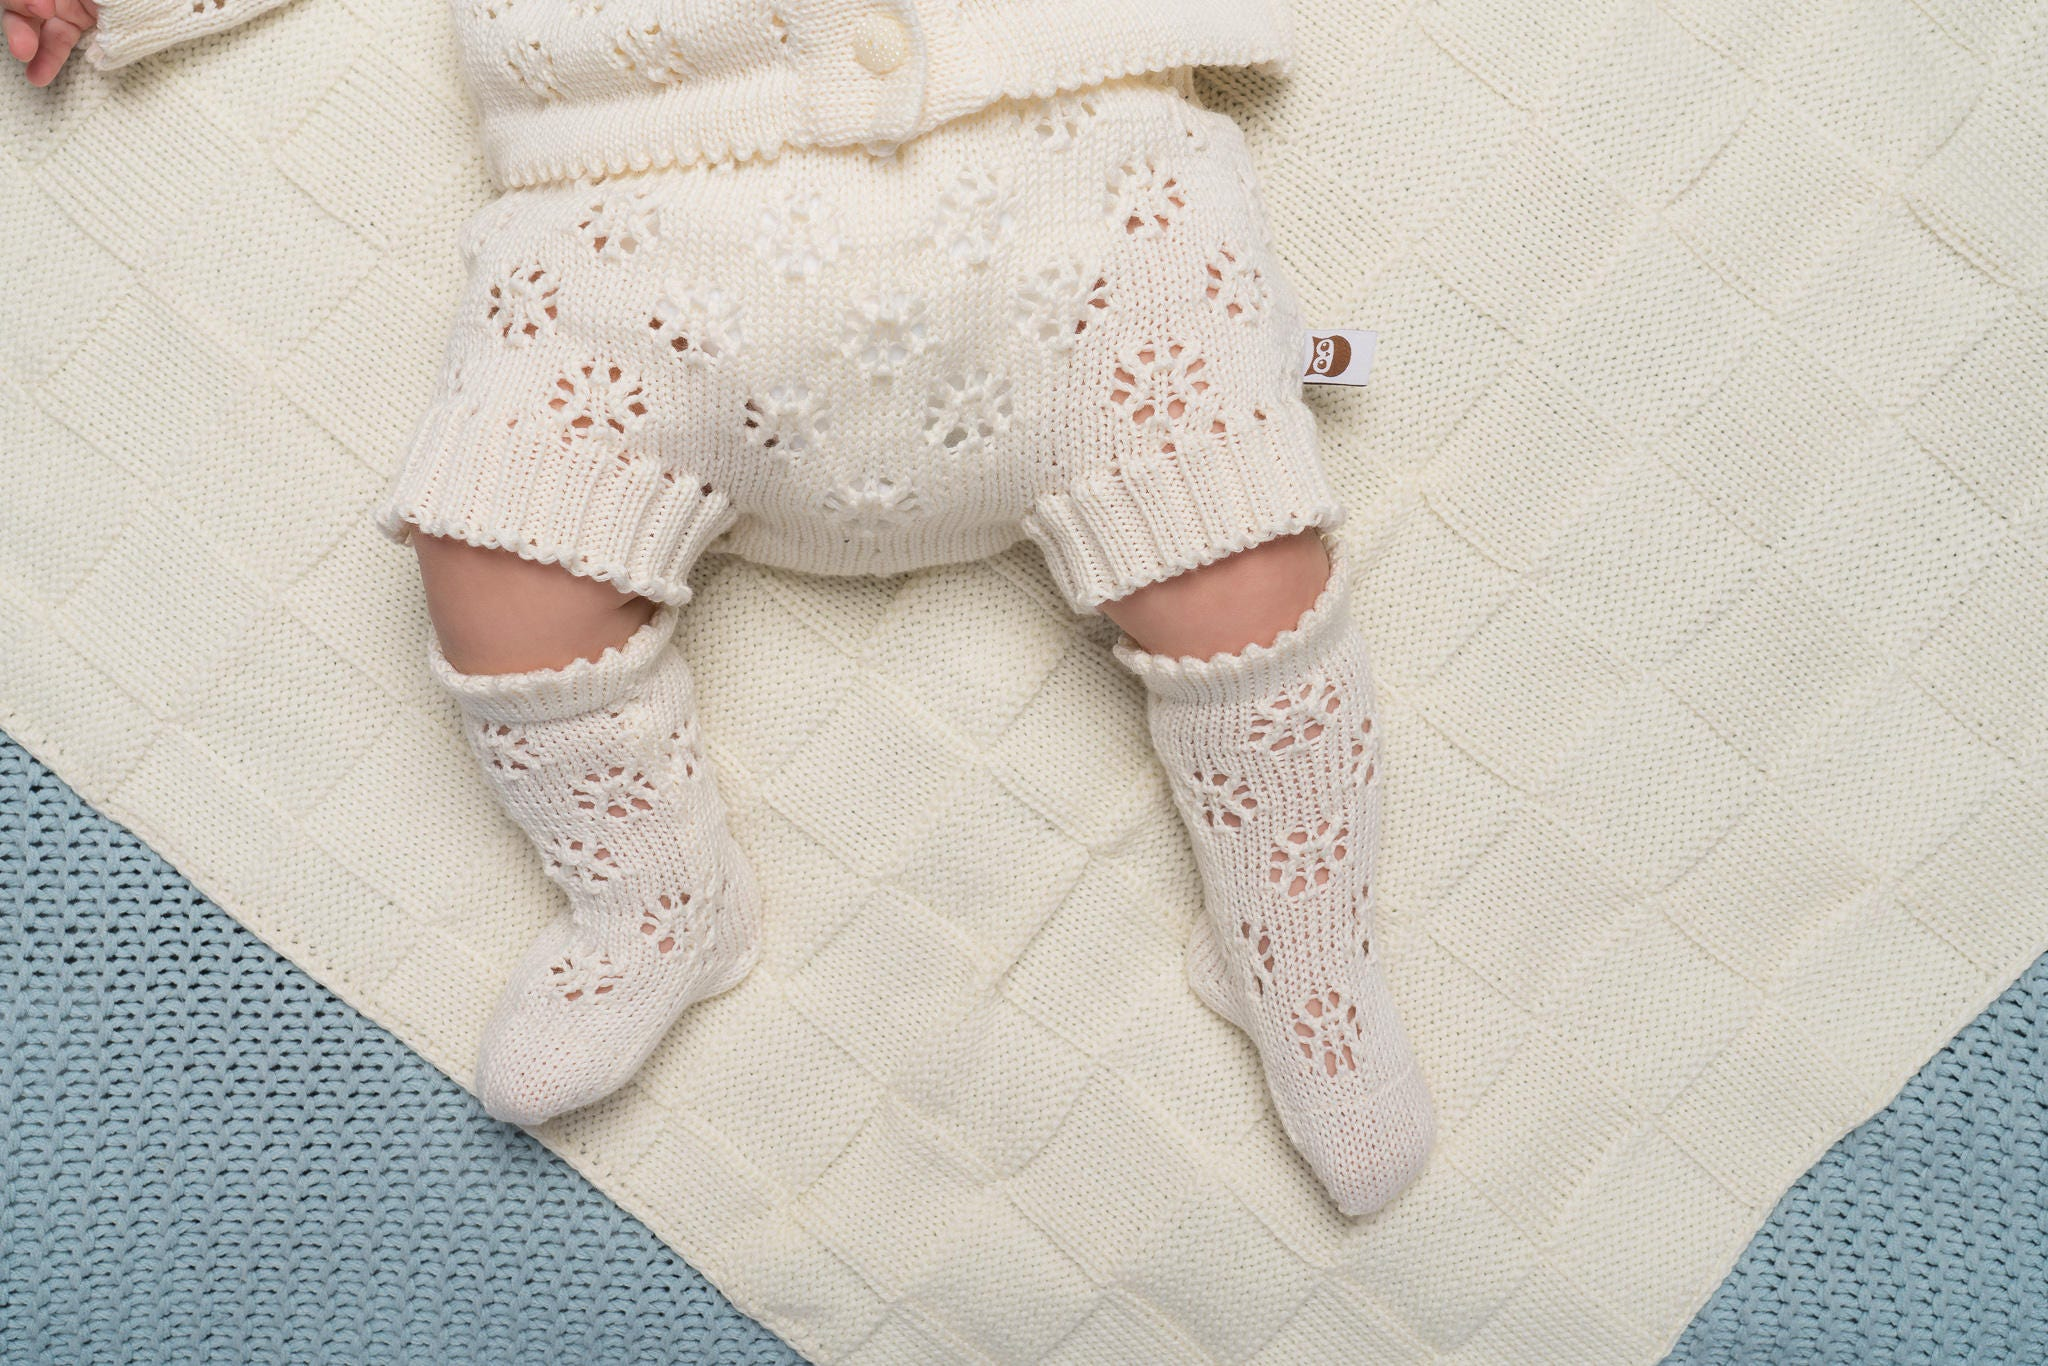 KNIT BABY SOCKS off white ivory lace socks Baby shower t